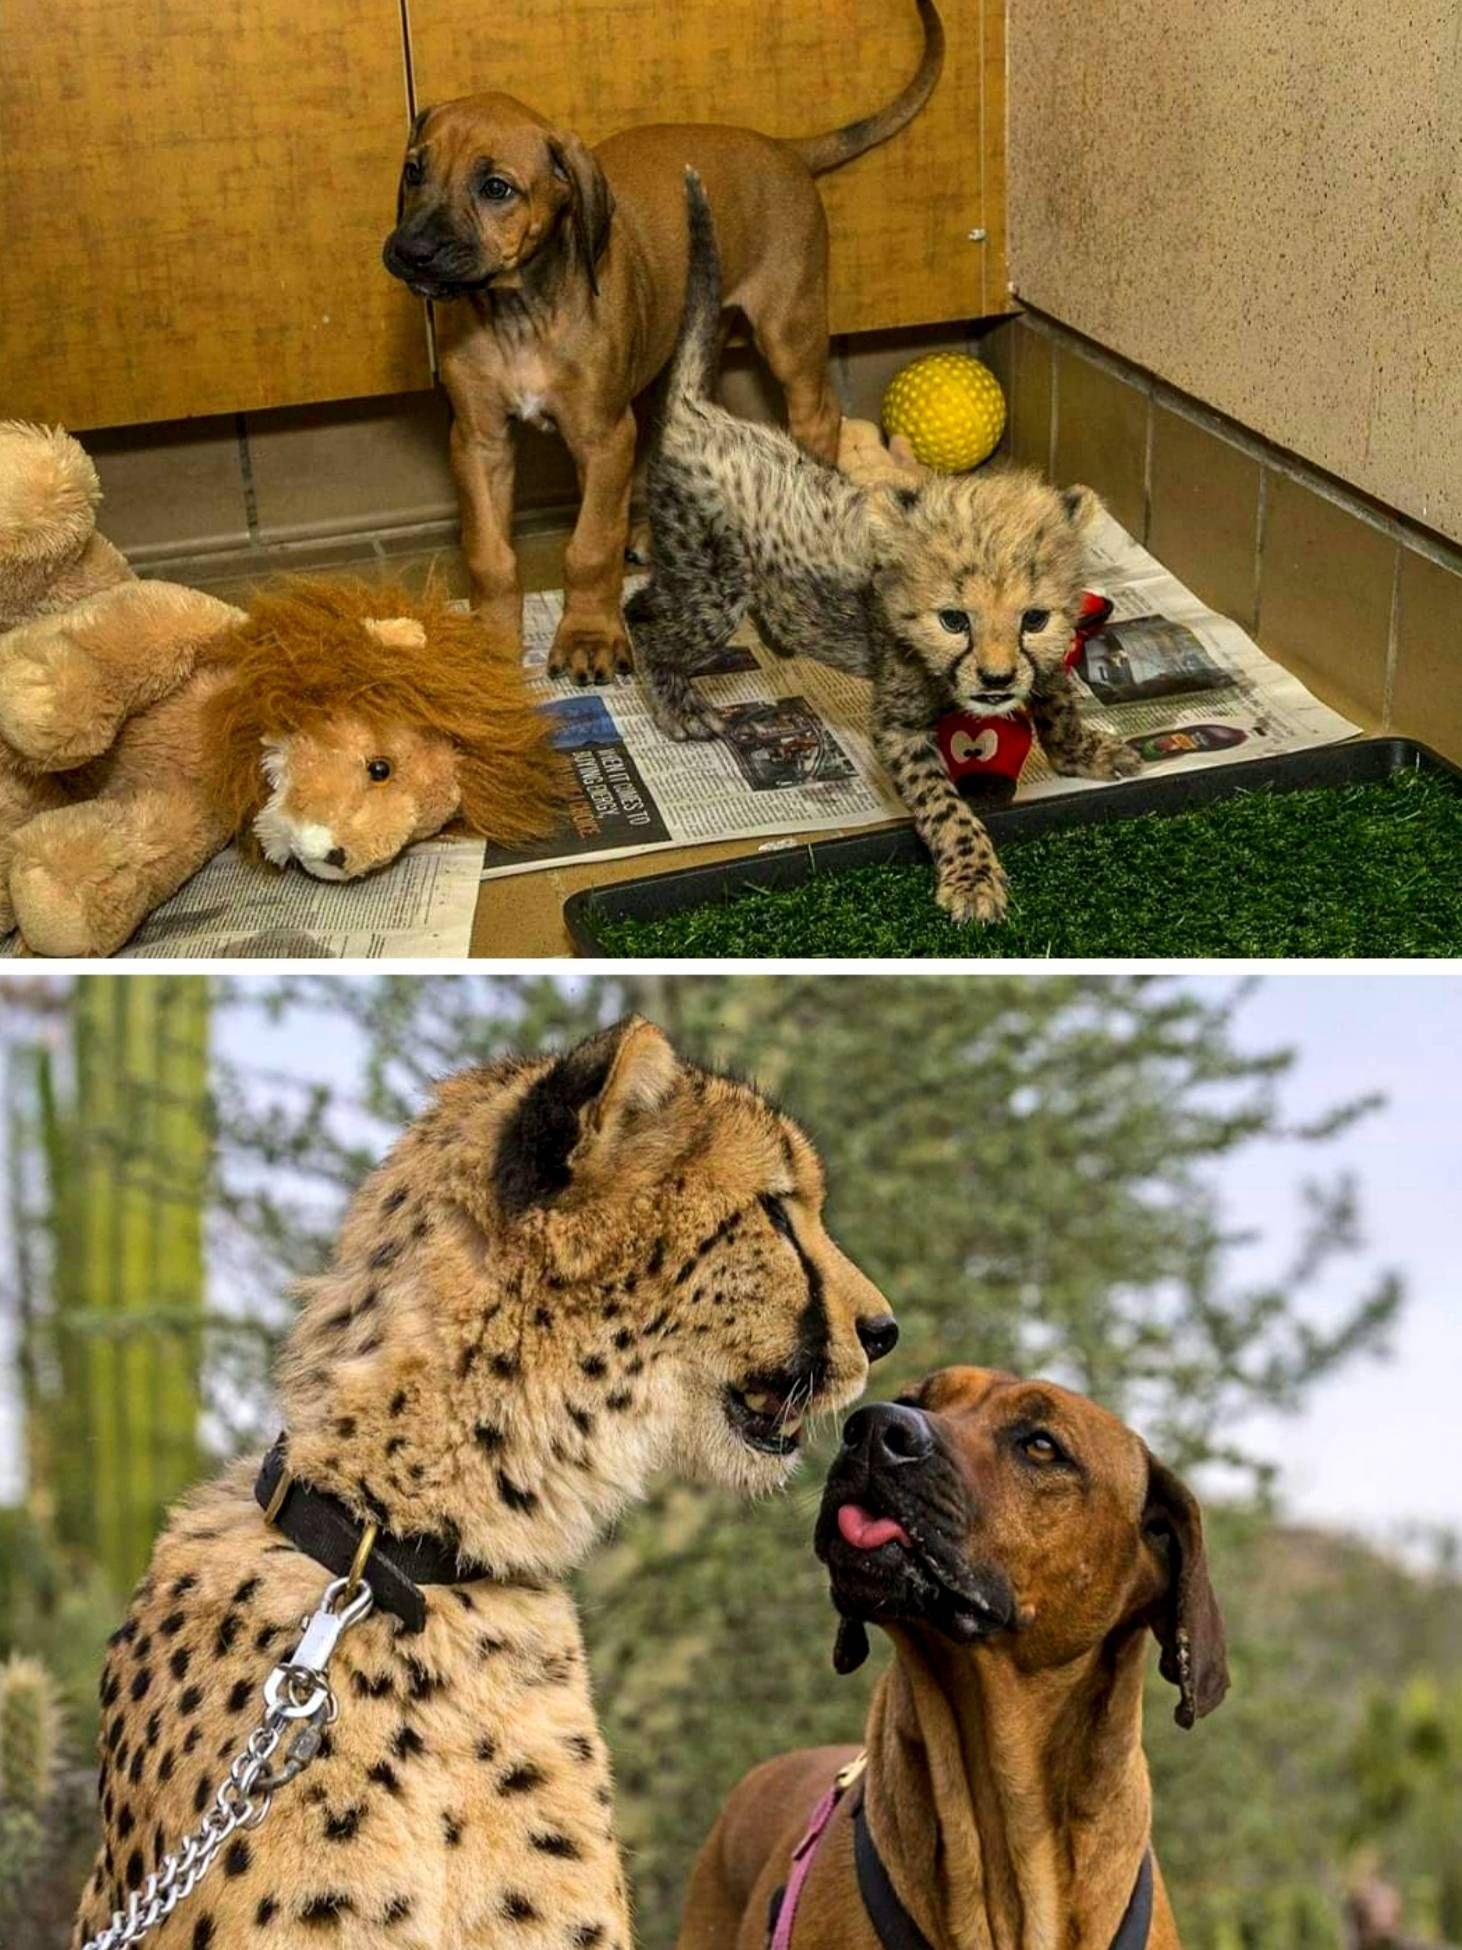 20 Pictures Of Cheetah And His Emotional Support Bff Grow Up Together Aww Cute Adorable Cute Kitten Pics Kitten Pictures Kittens Cutest